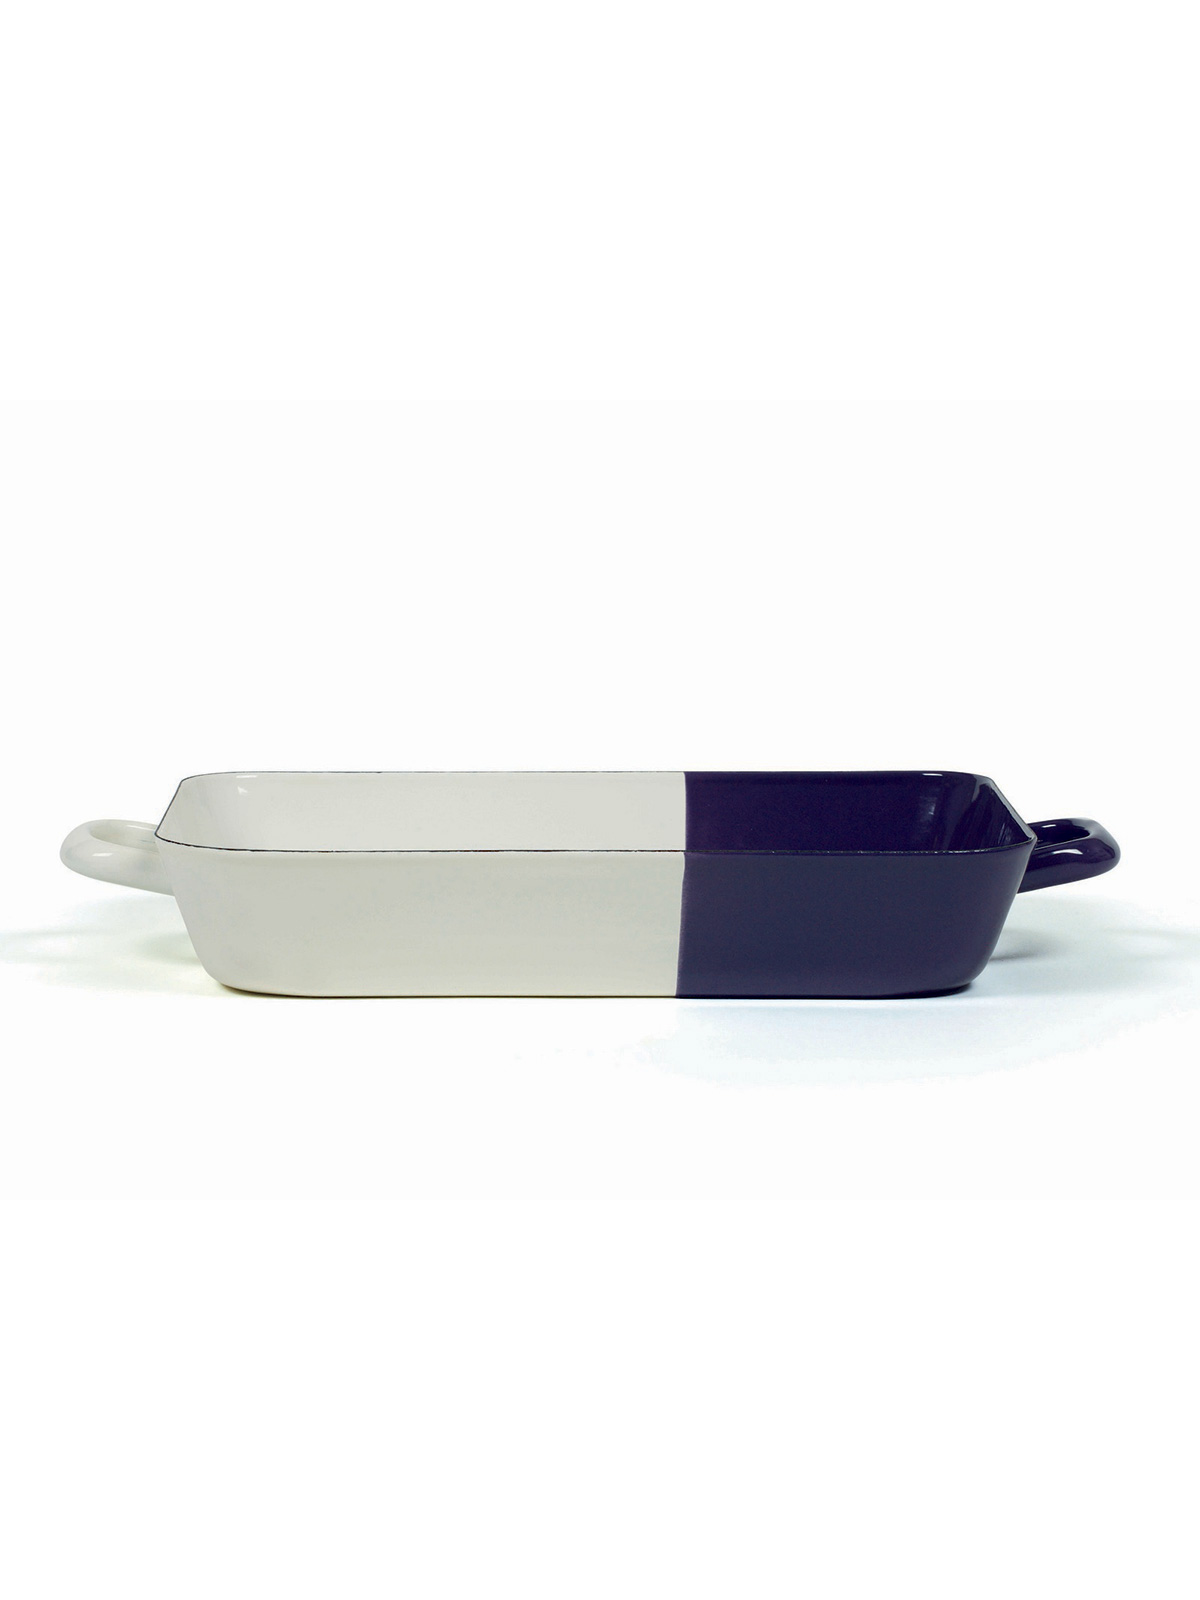 baking dish cream/plum 33/20 cm (0046-571)